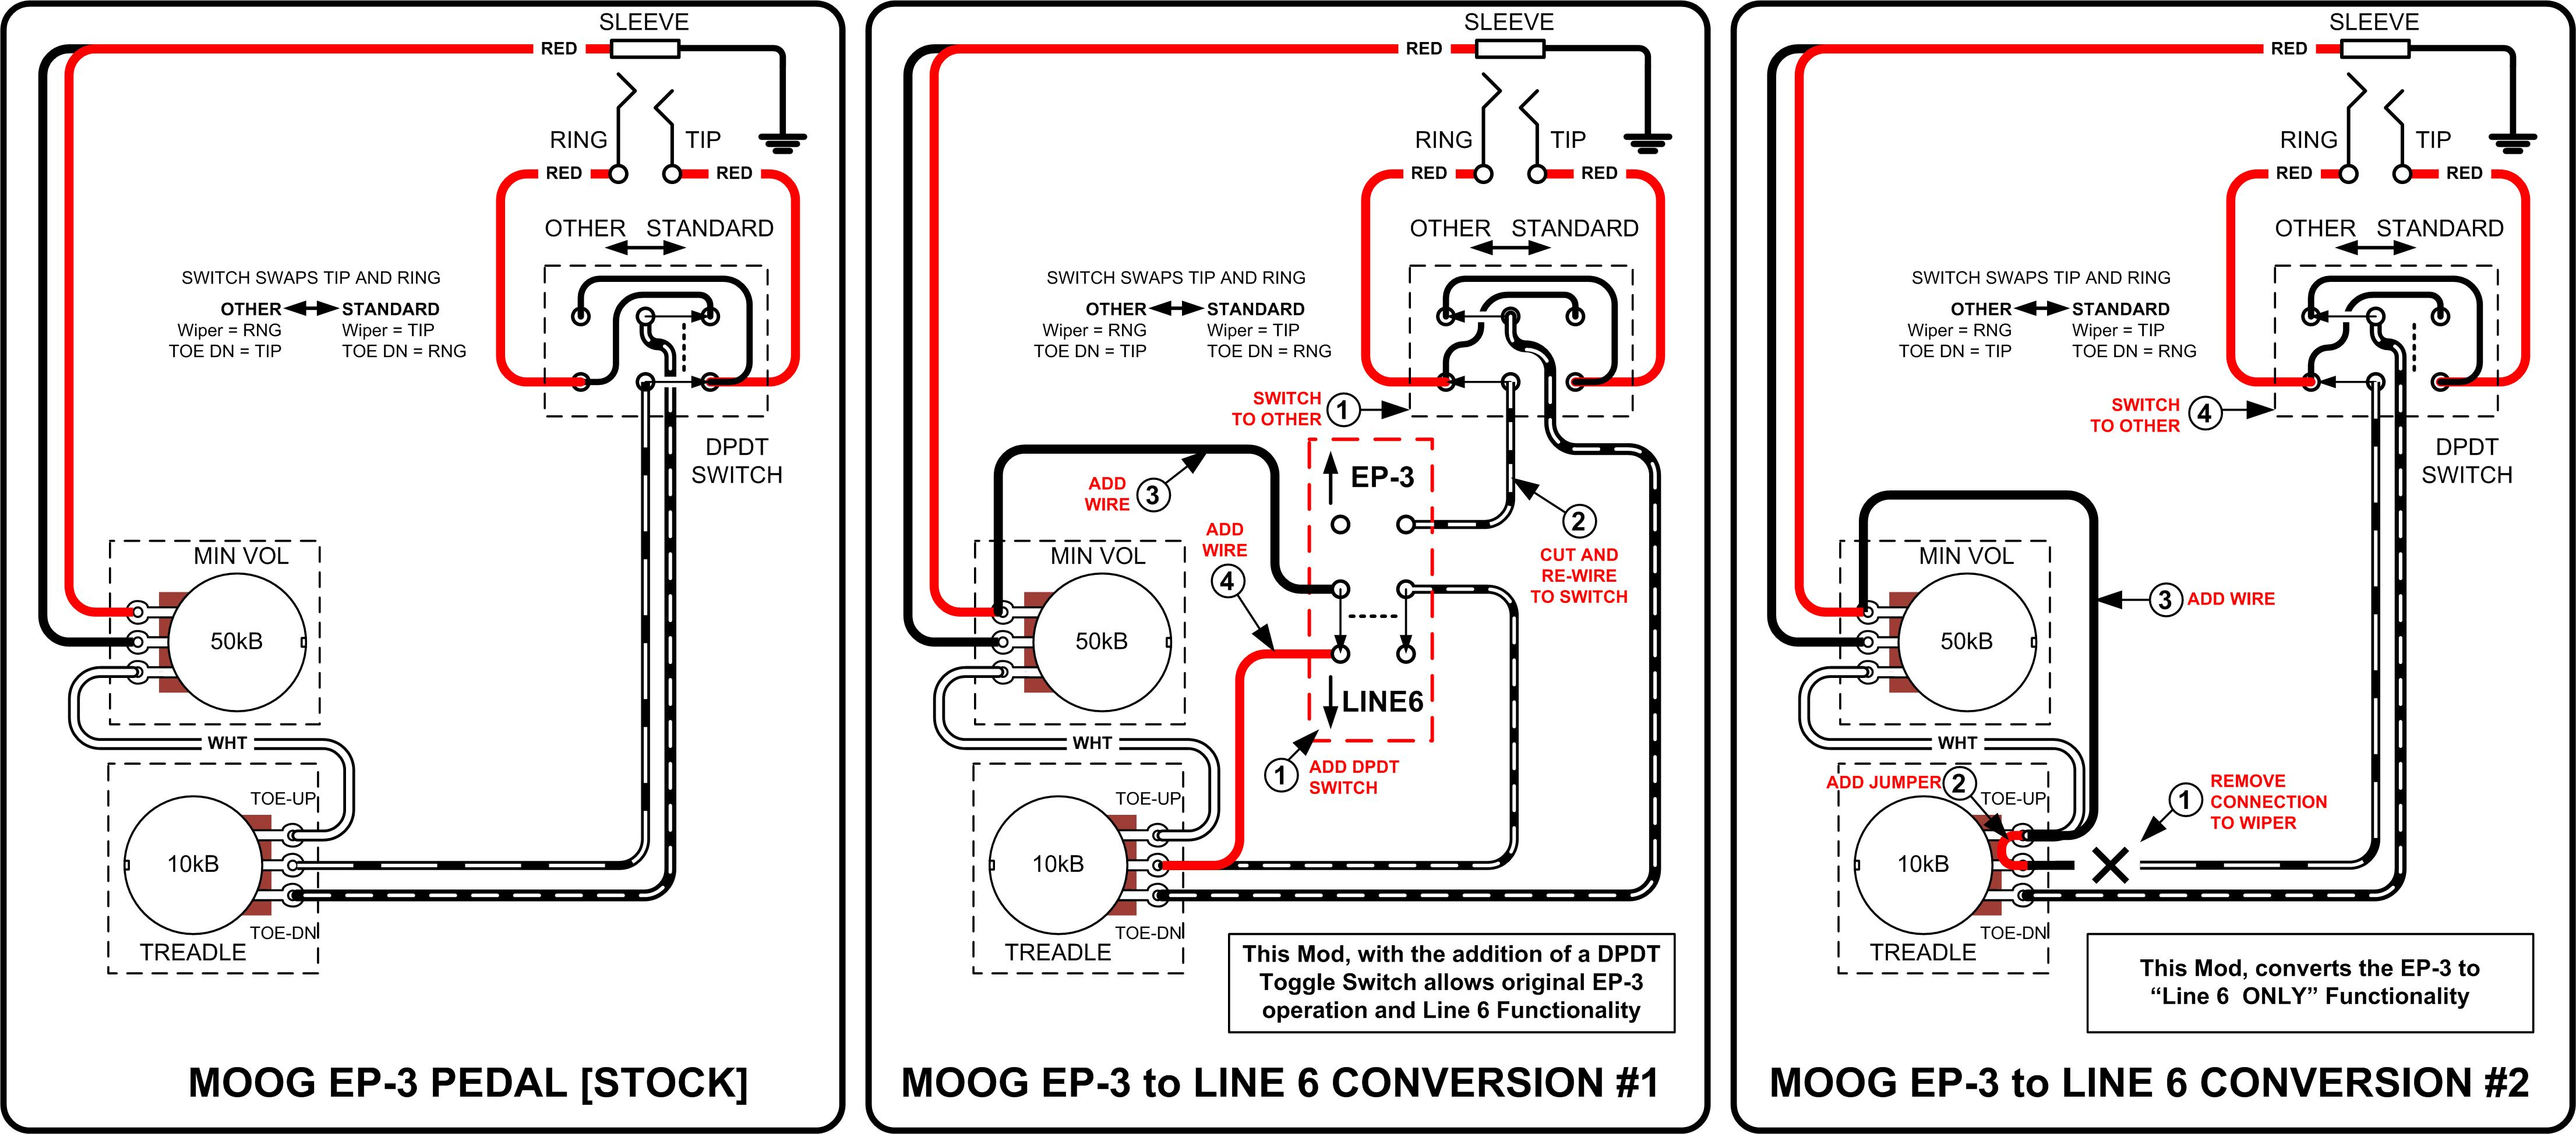 Line 6 Hx Stomp Faq Dallas Rangemaster Pedal Wiring Diagram Not Sure Why The Graphic Shows A 10k Pot For Ep 3 Mine Is 100k